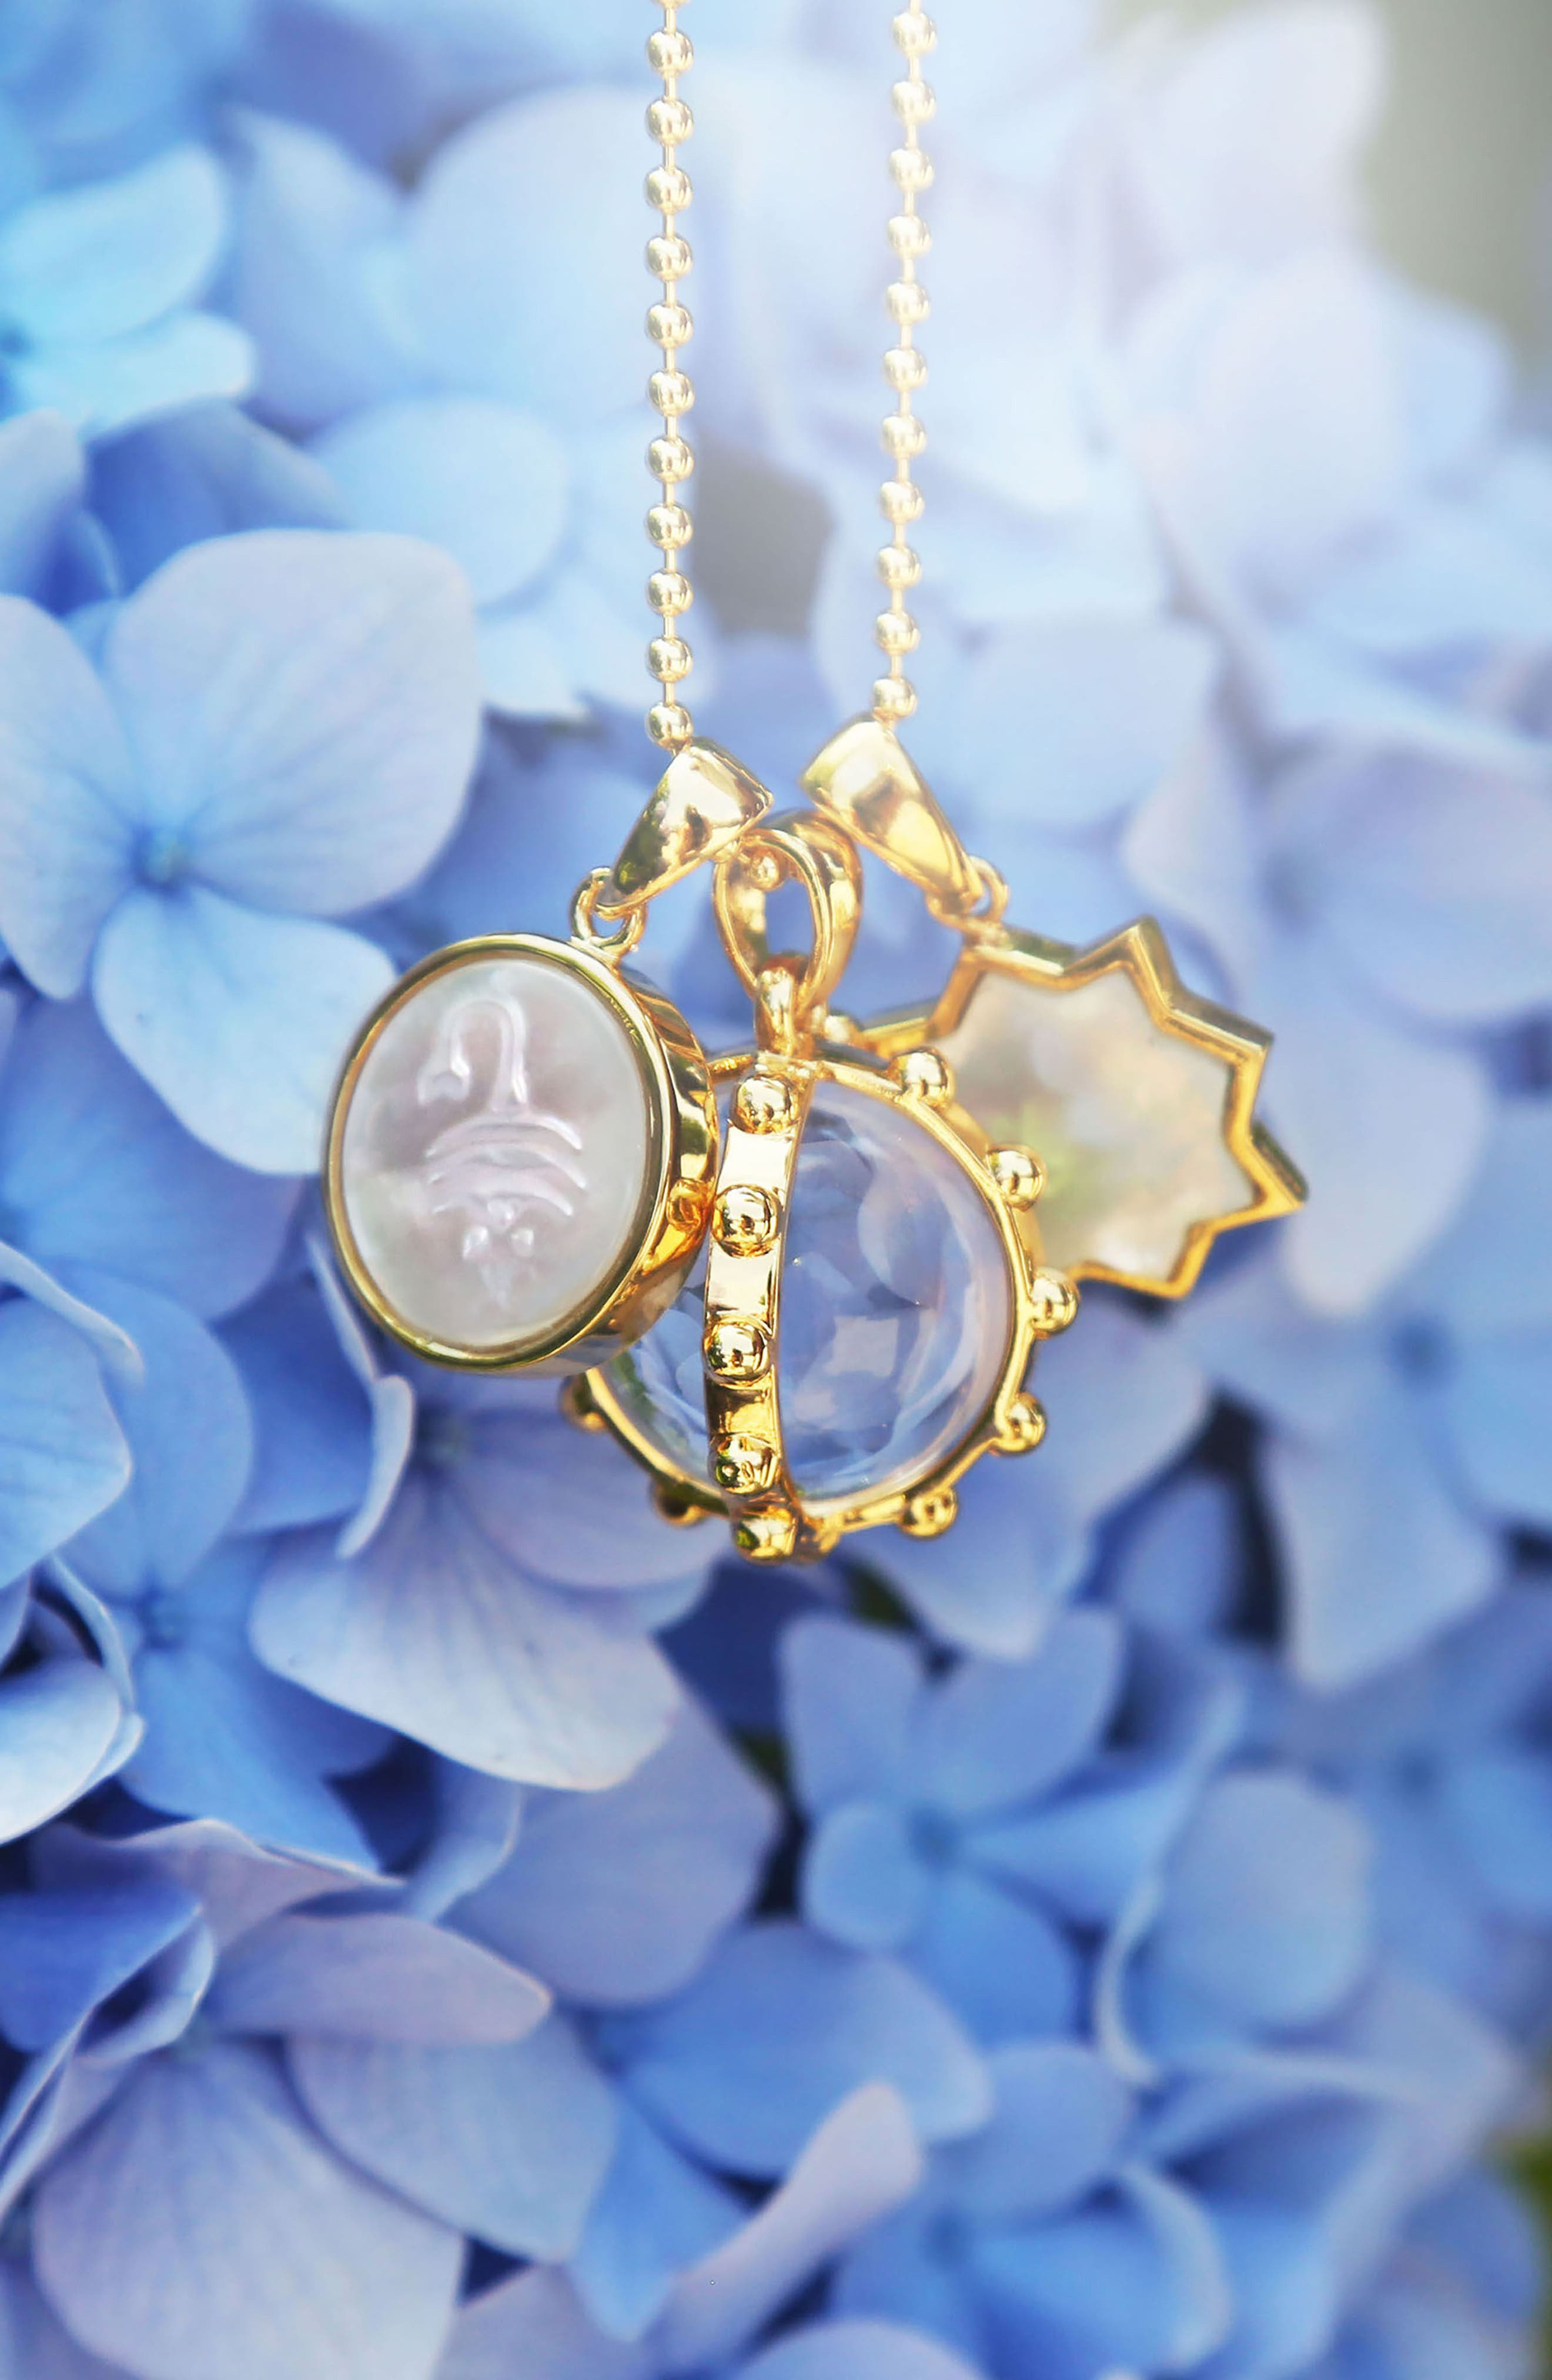 Zodiac Mother-of-Pearl Charm,                             Alternate thumbnail 2, color,                             ARIES